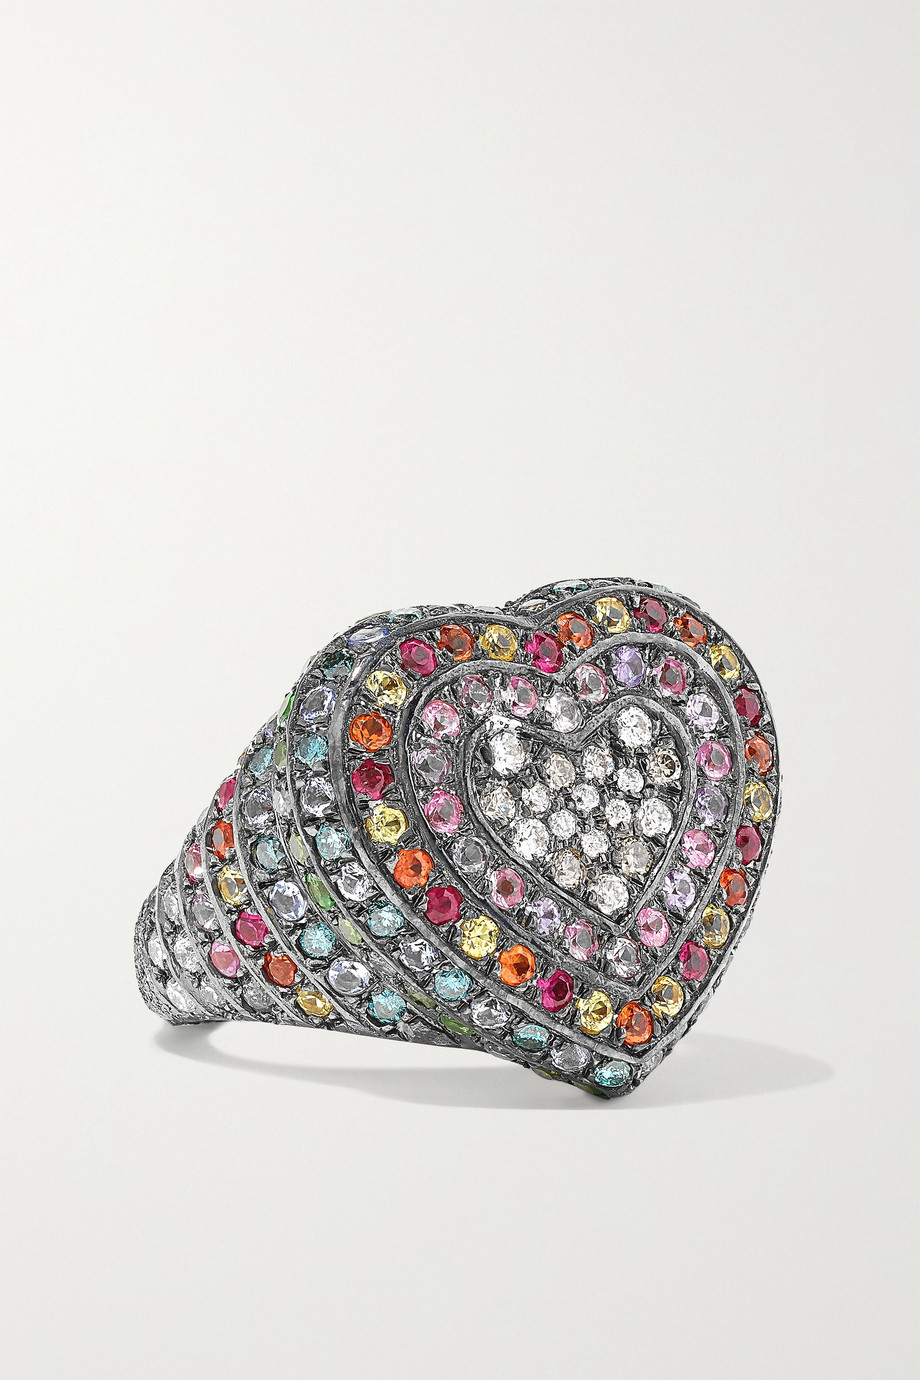 Carolina Bucci Bague en or 18 carats noirci et pierres multiples